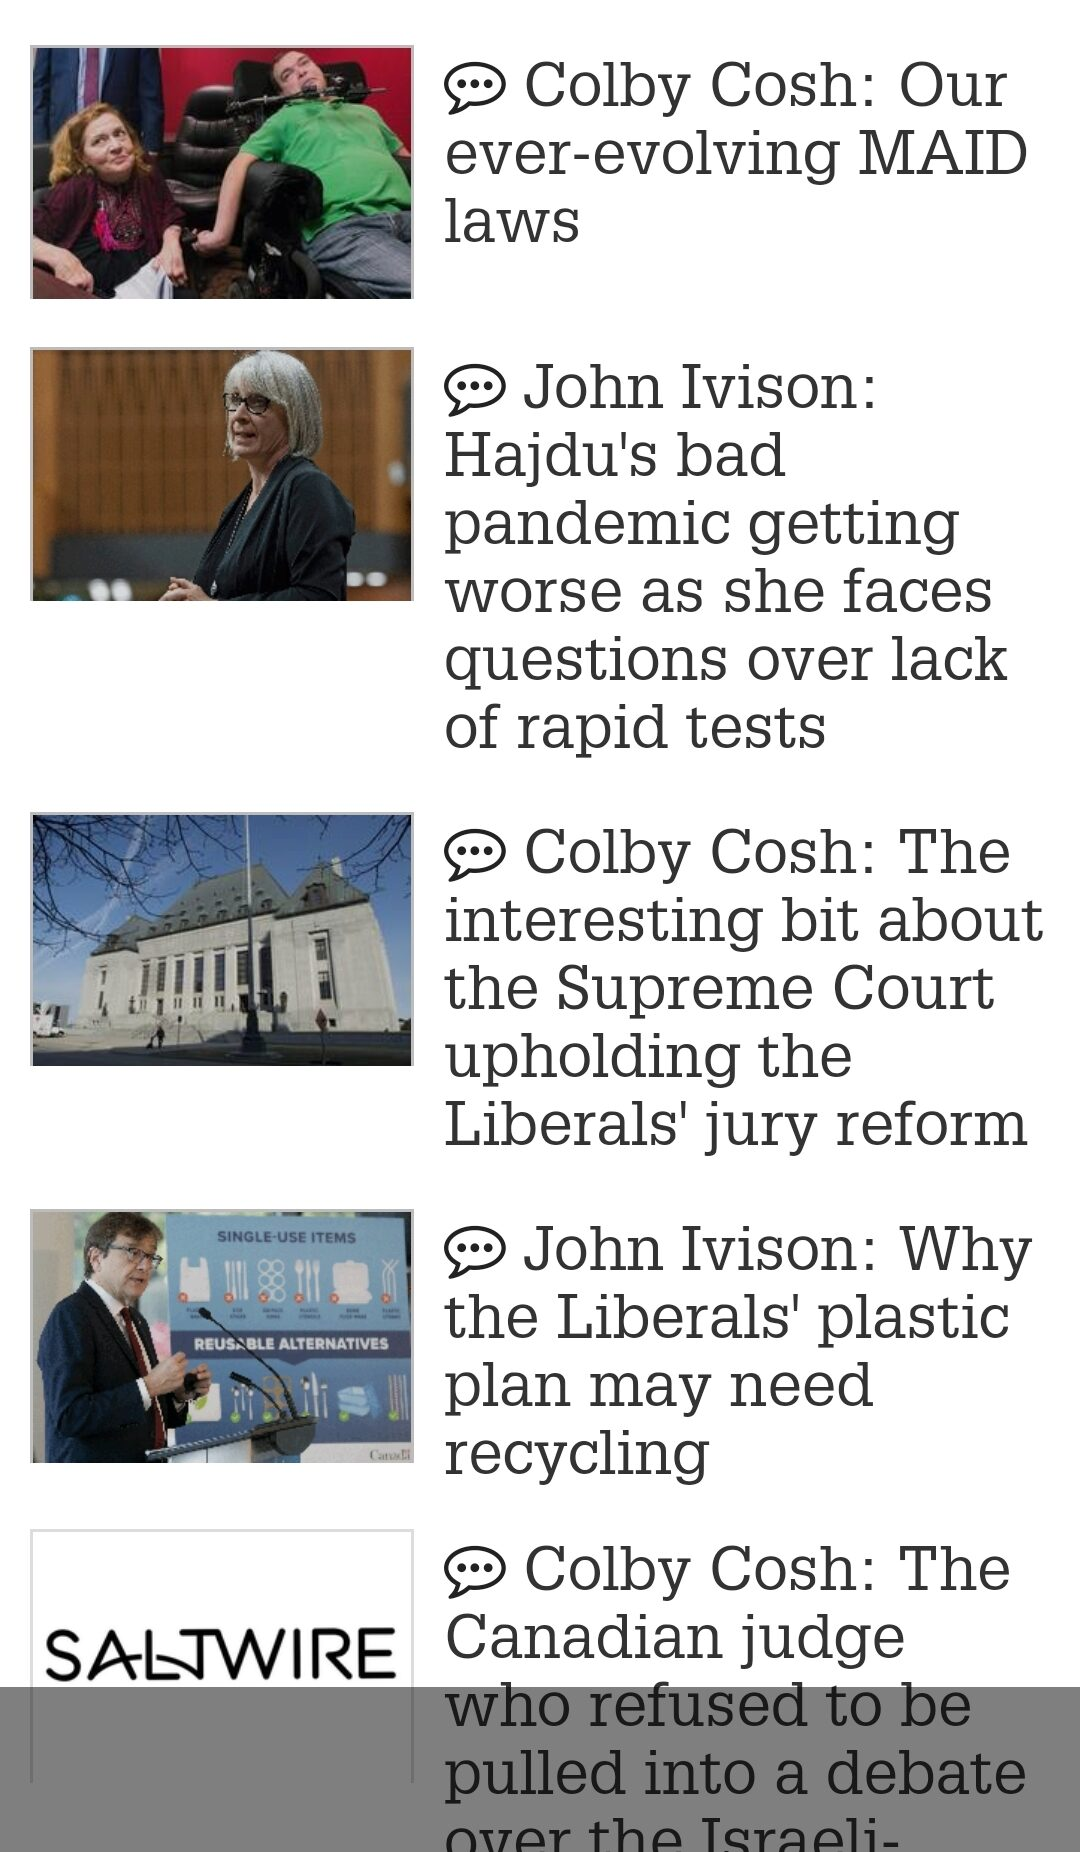 Screenshot with headlines for several opinion pieces, all by John Ivison and Colby Cosh.